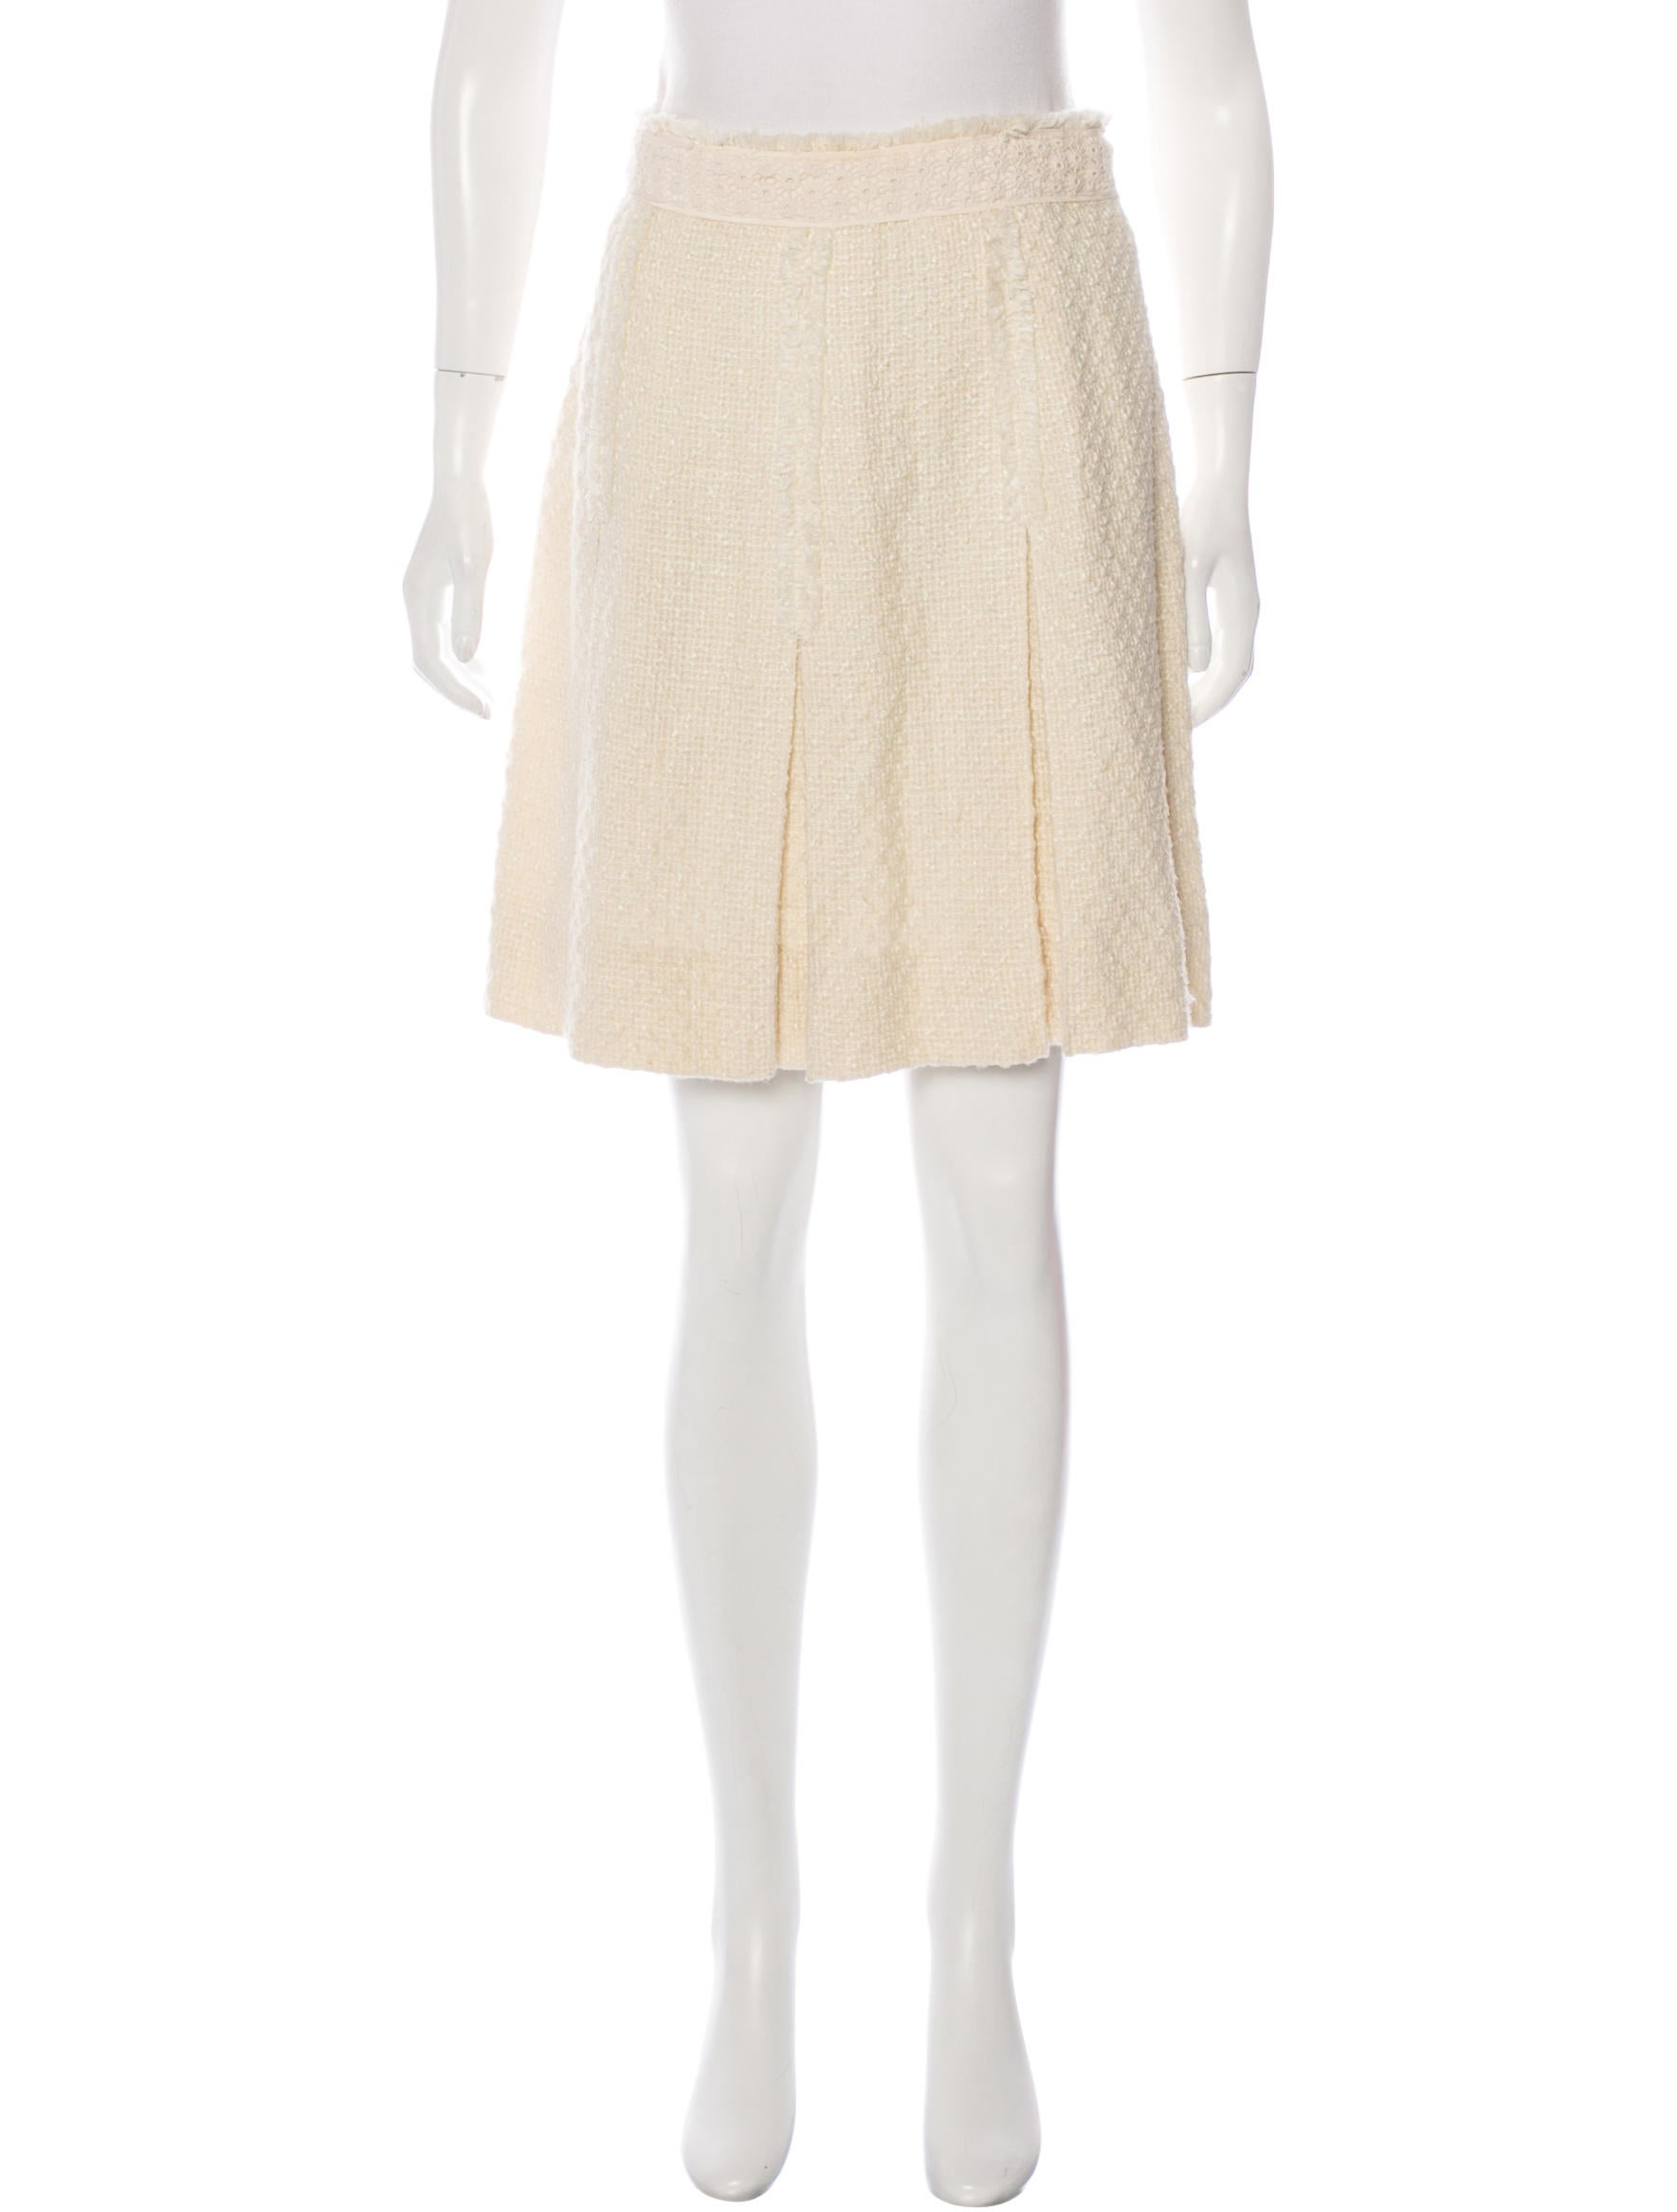 burch pleated tweed skirt clothing wto91420 the